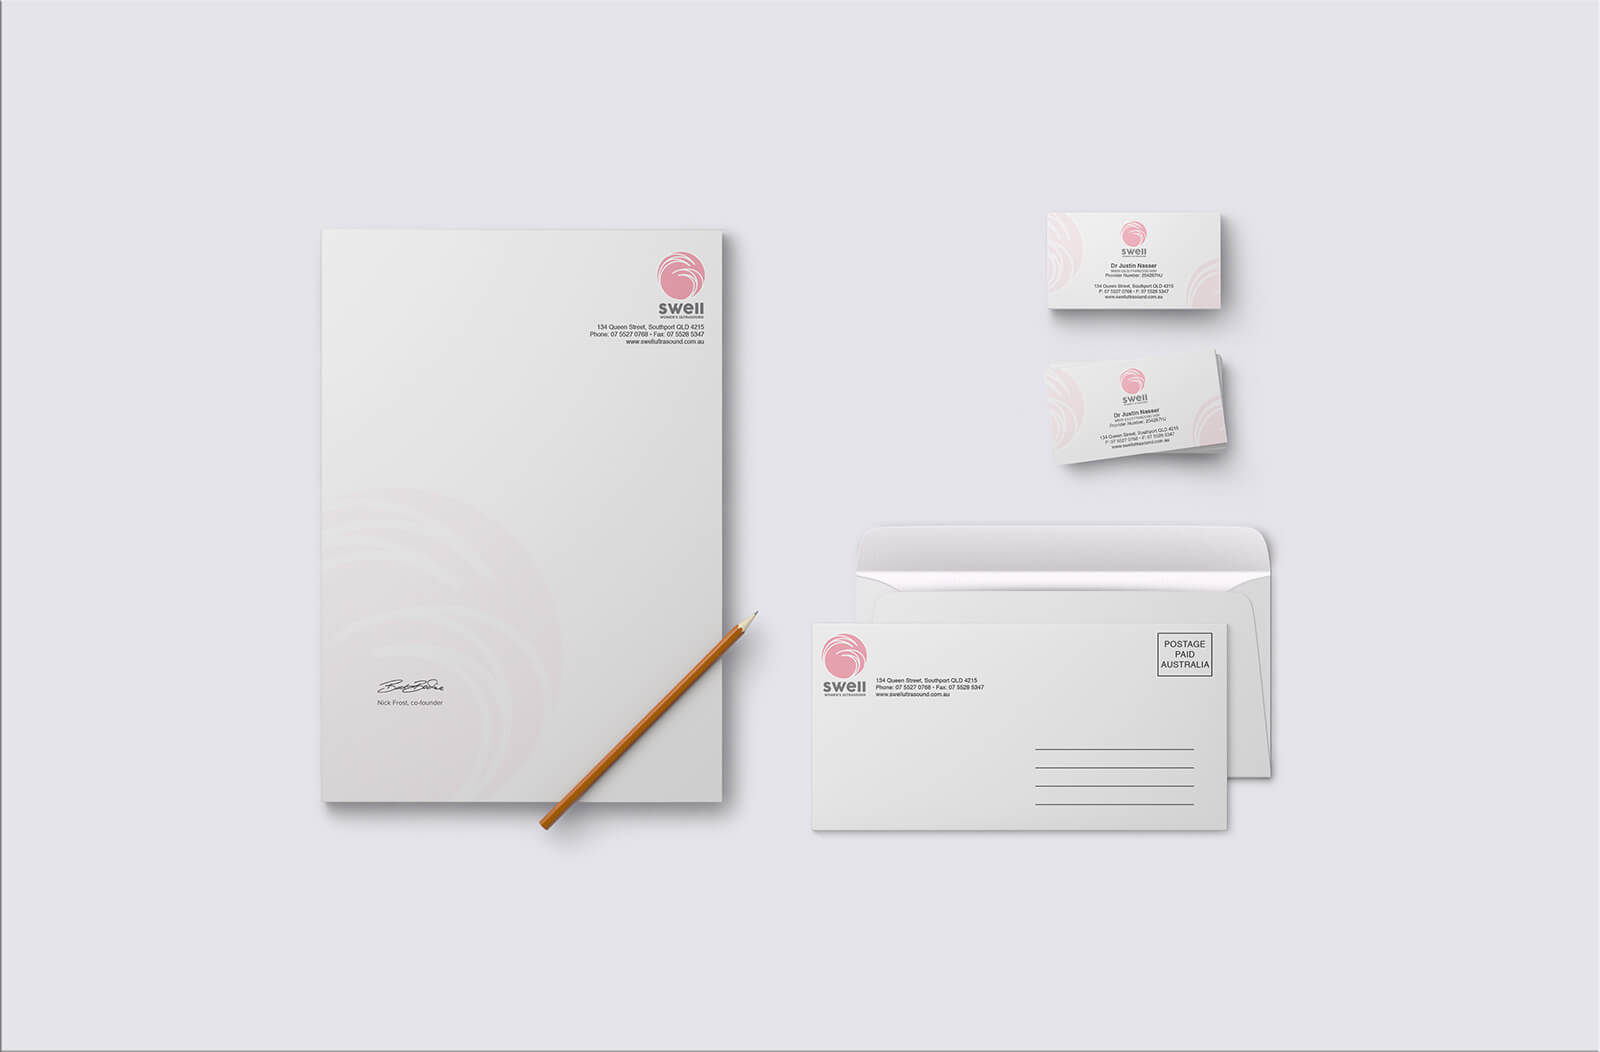 business cards, stationery graphic design service for clinic by freelance designer metrodesign bexley kogarah sydney